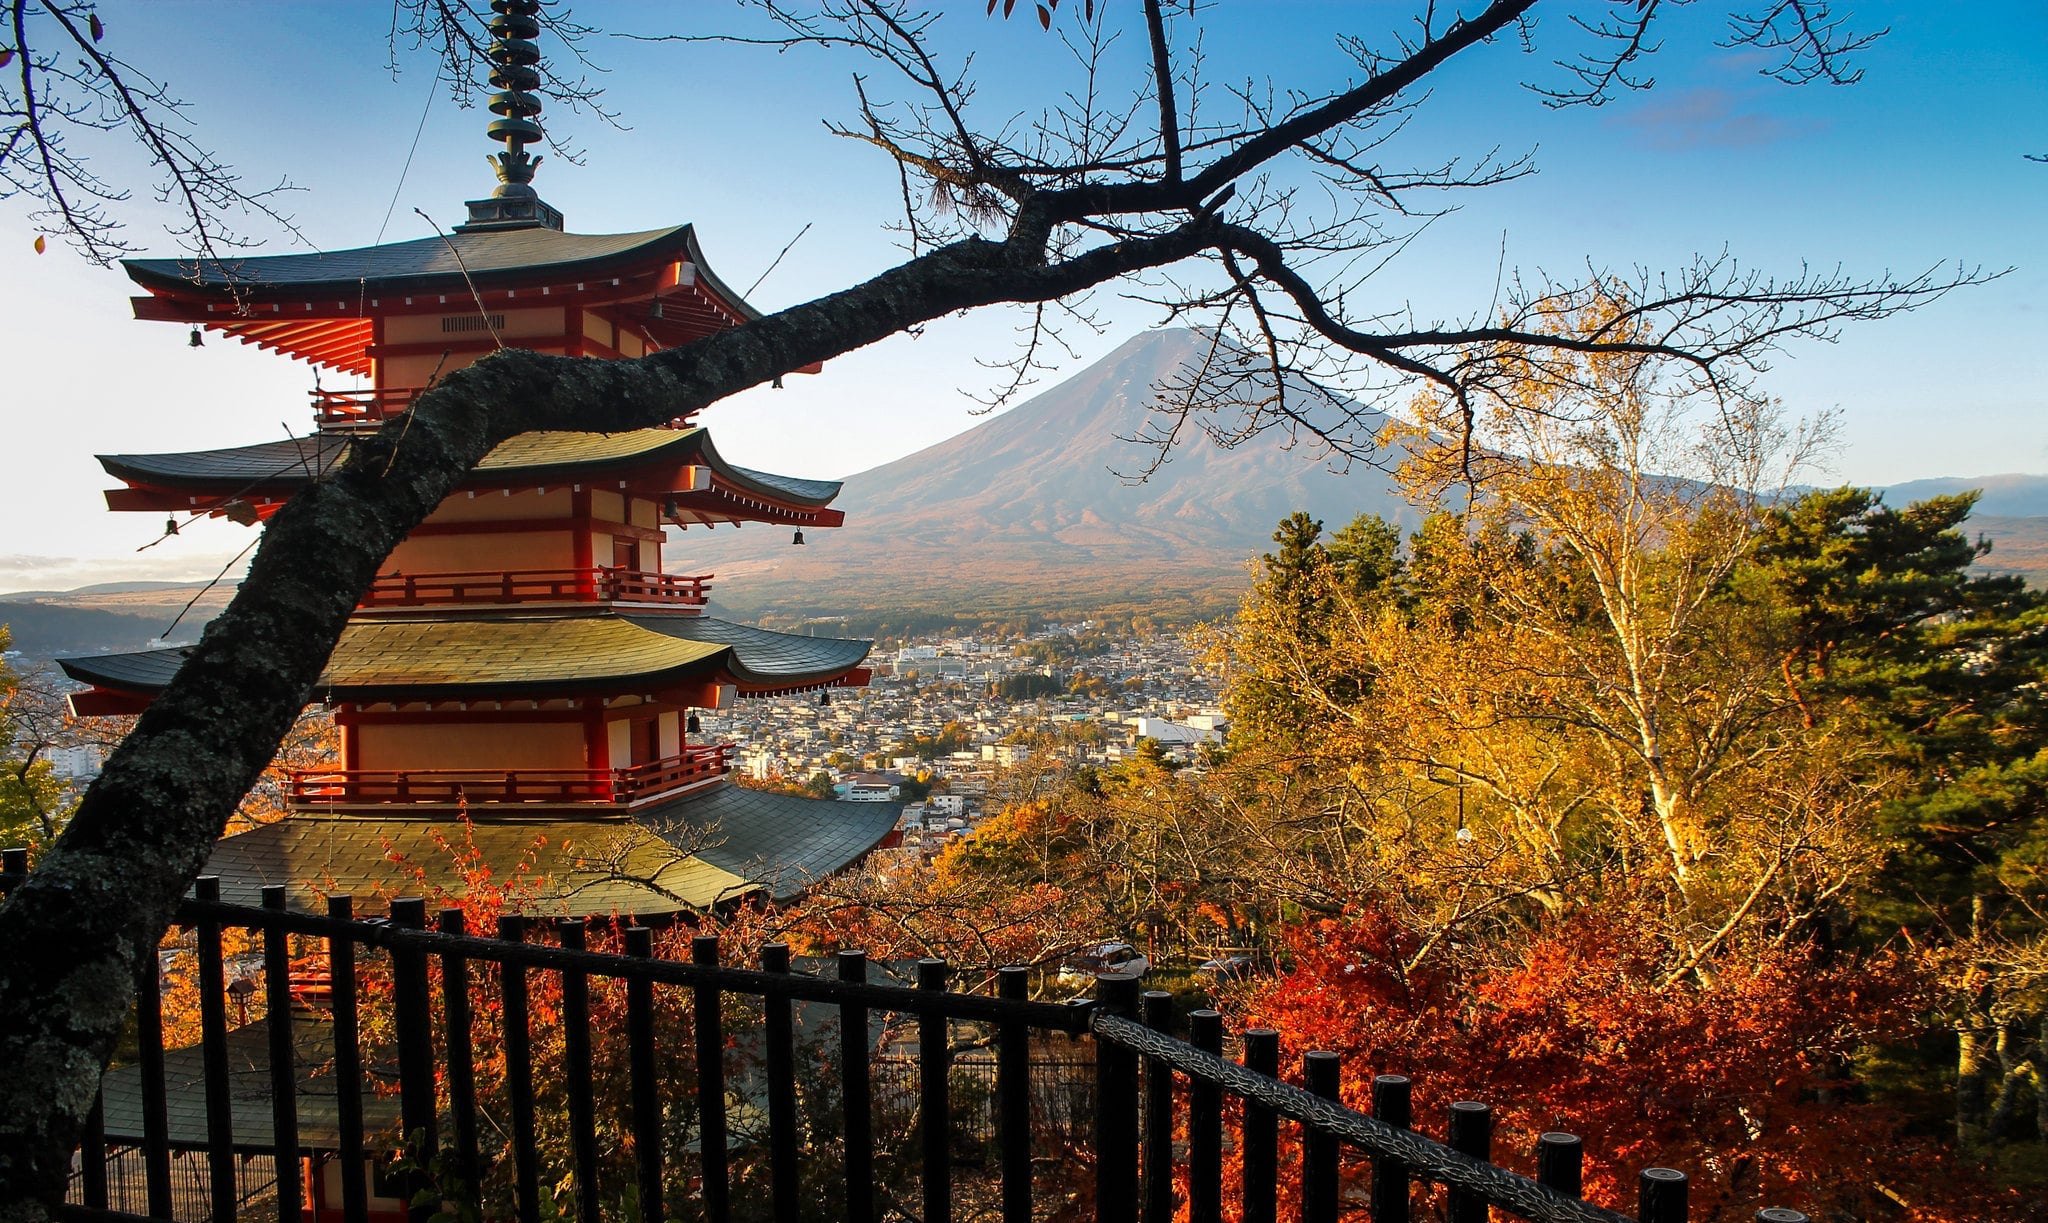 Autumn in Japan 2019: Your Best Shots